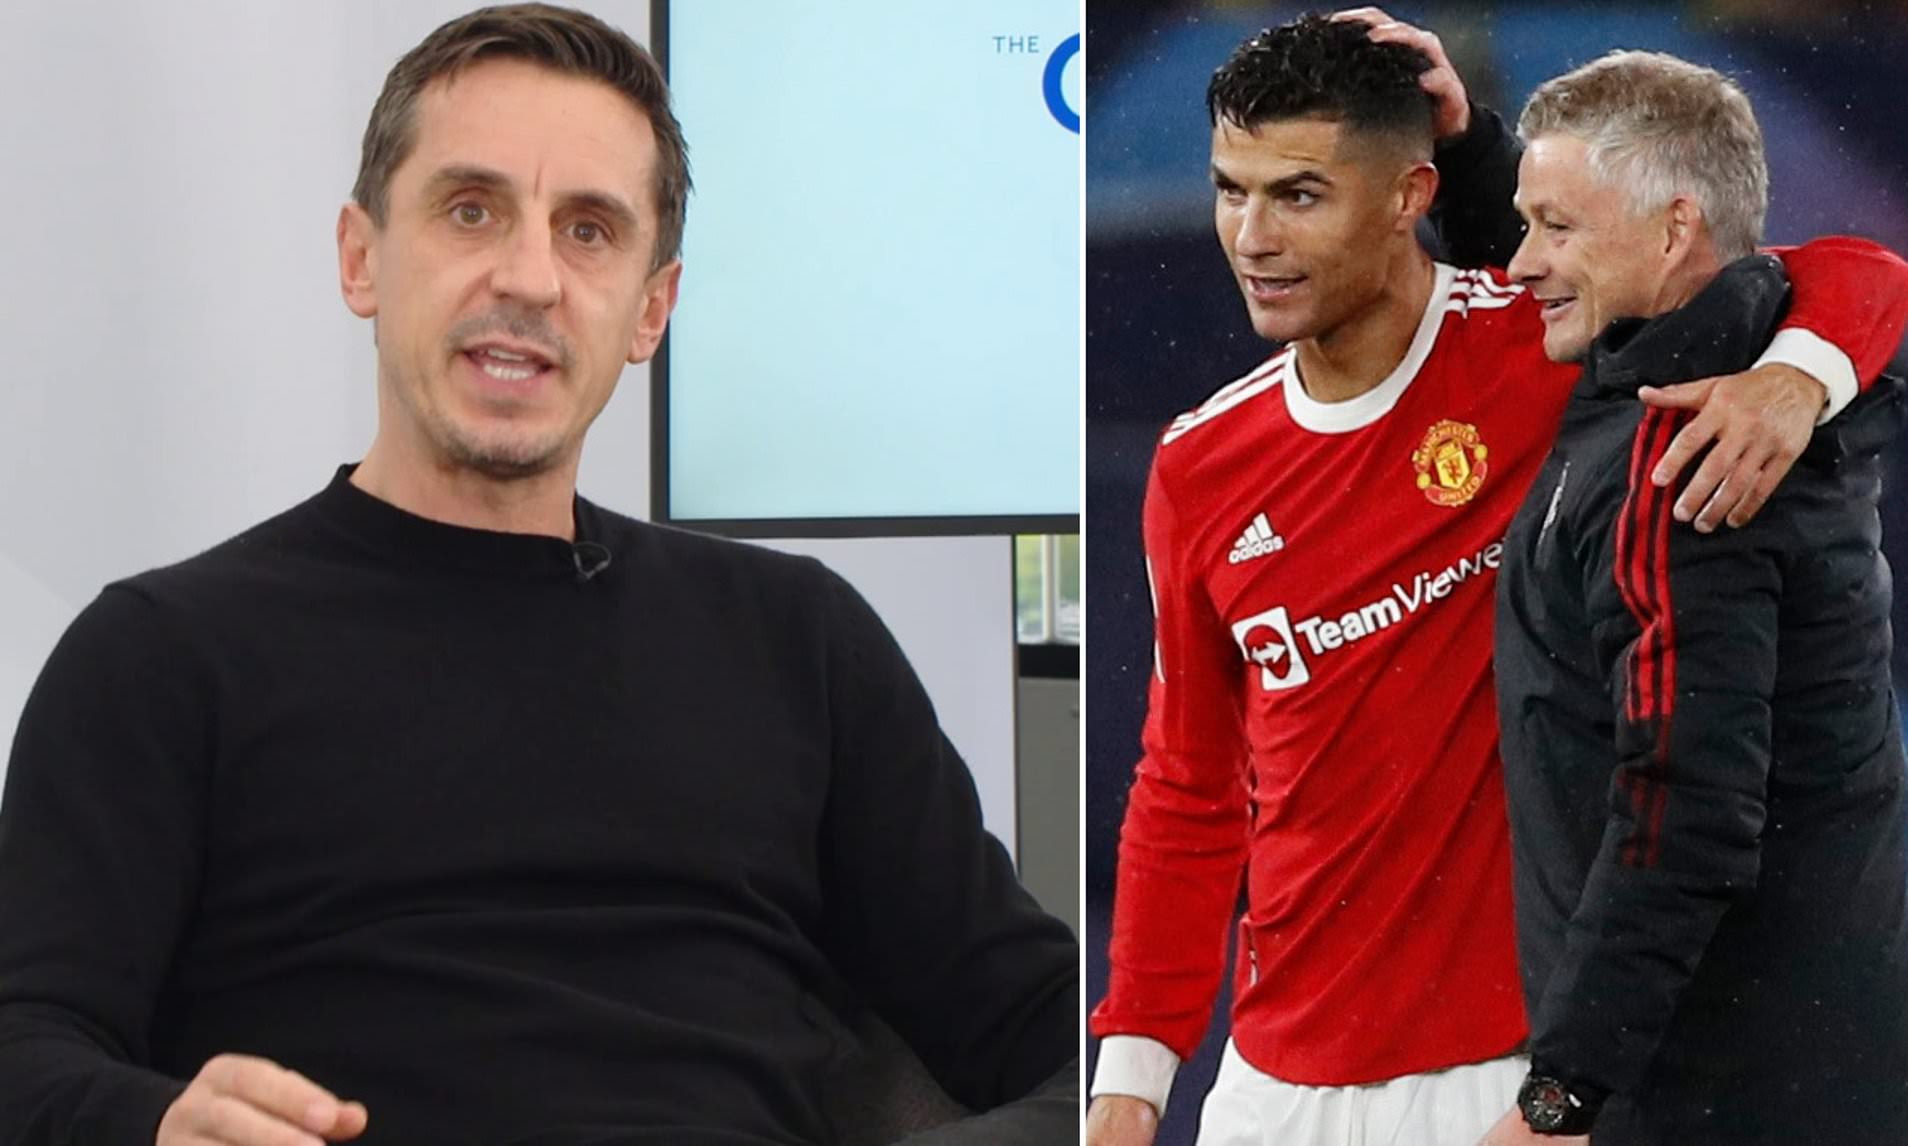 Man United: Solskjaer MUST 'compensate' for Cristiano Ronaldo's poor work rate, says Gary Neville